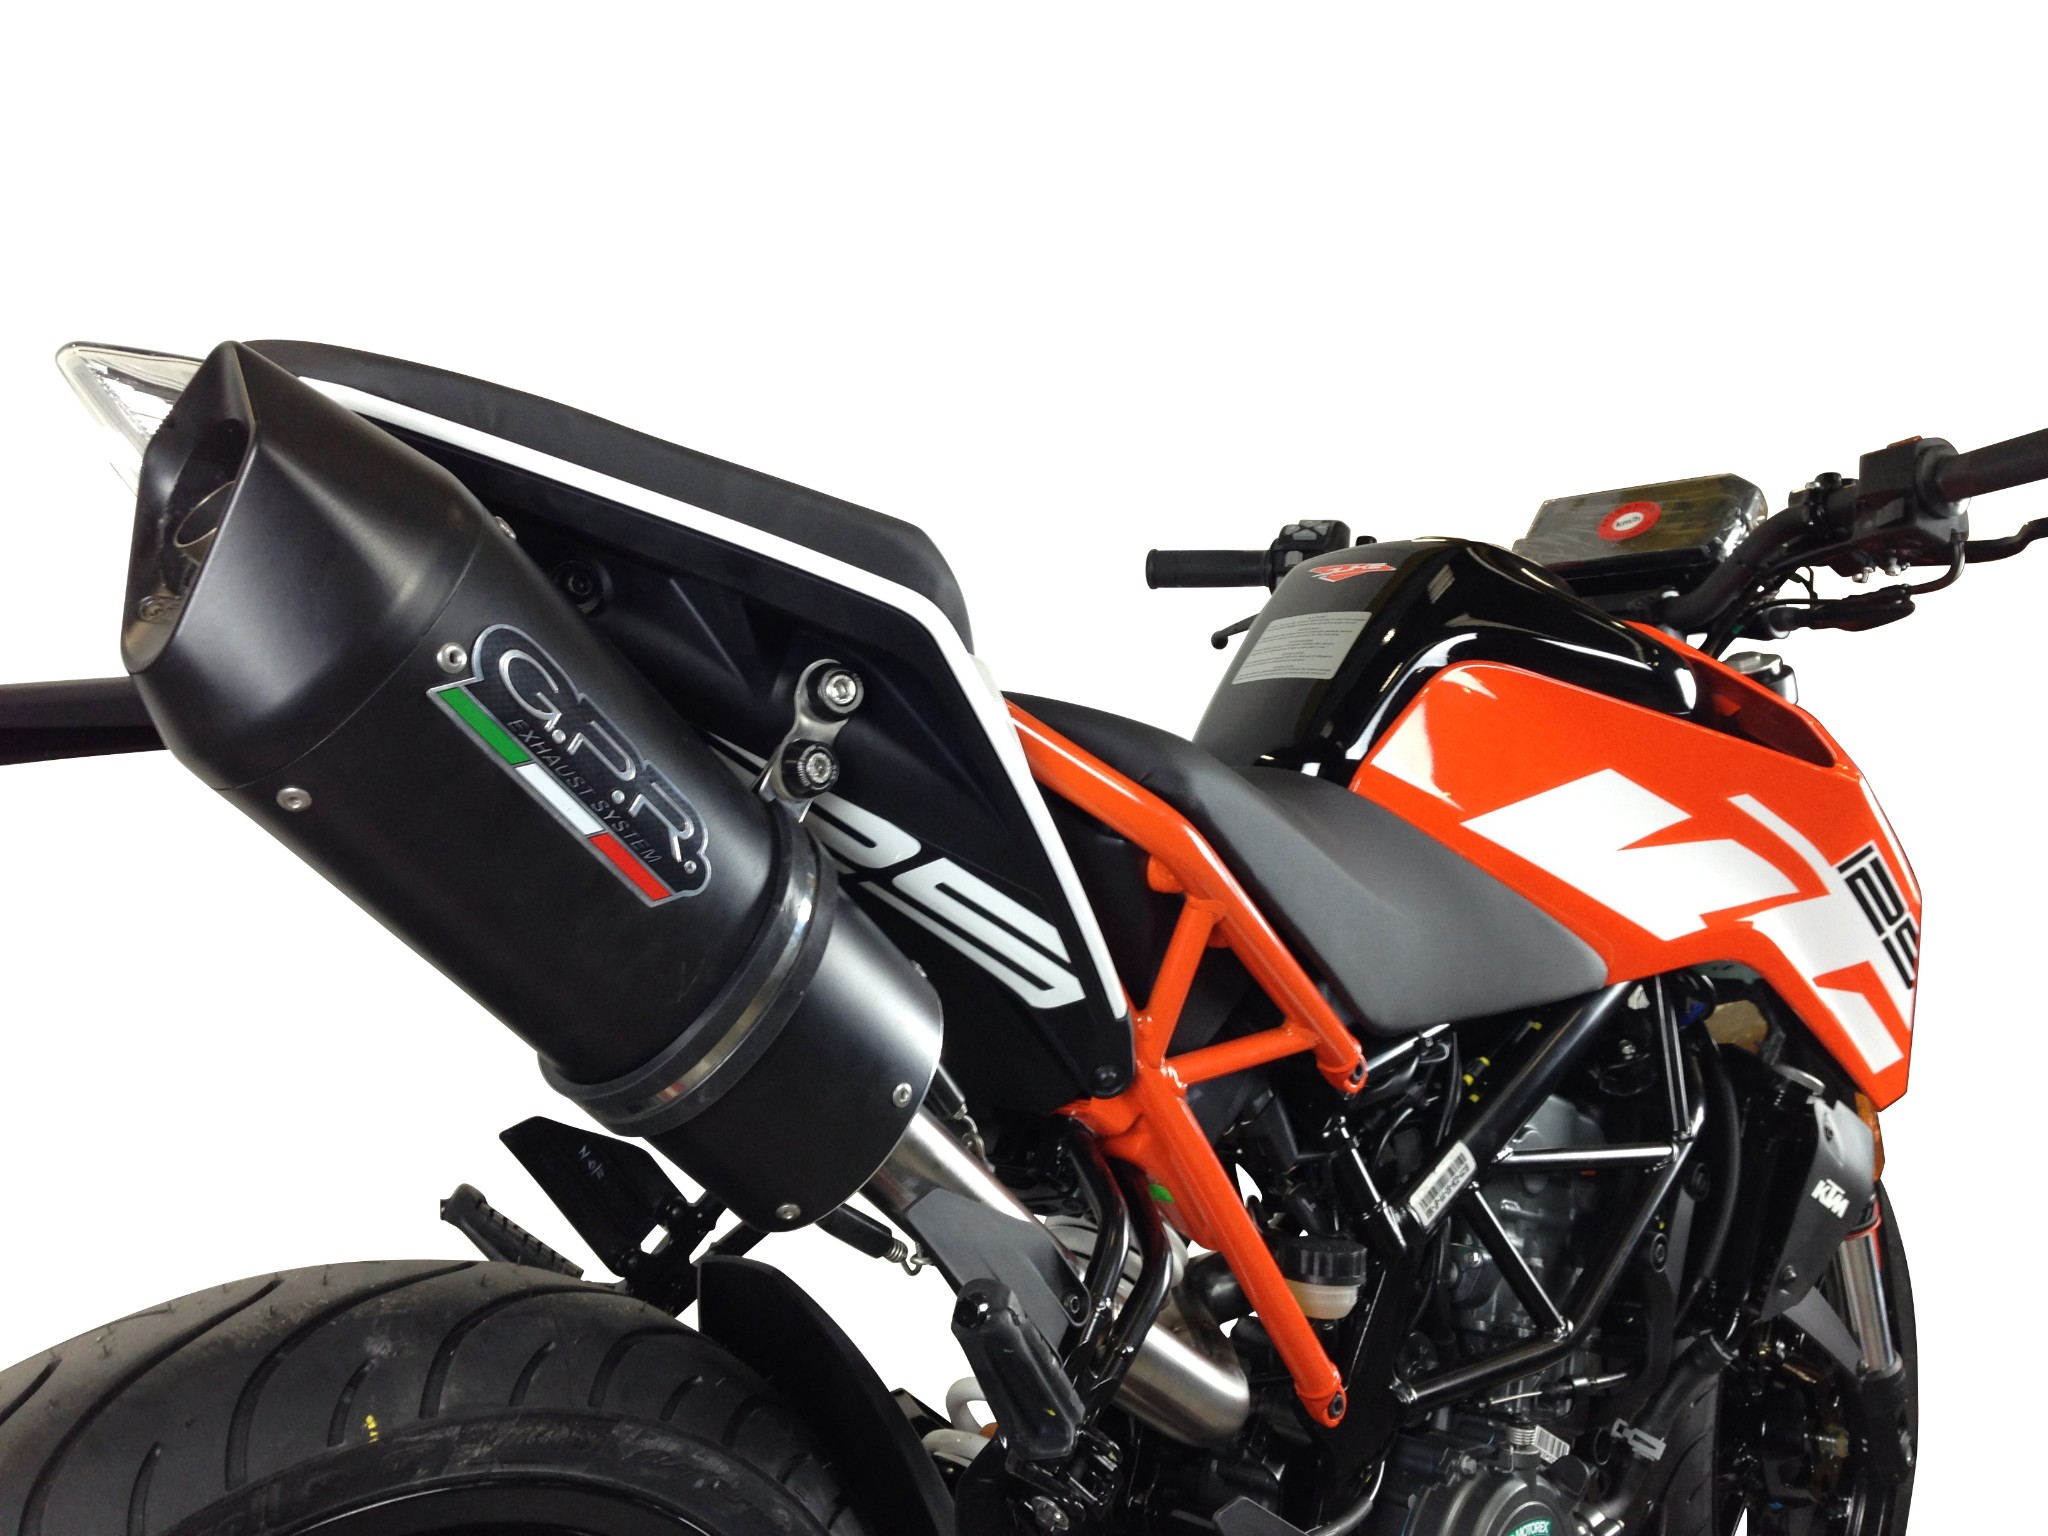 ktm duke 125 2017 2018 high mount gpr exhaust slip on silencer furore nero new ebay. Black Bedroom Furniture Sets. Home Design Ideas